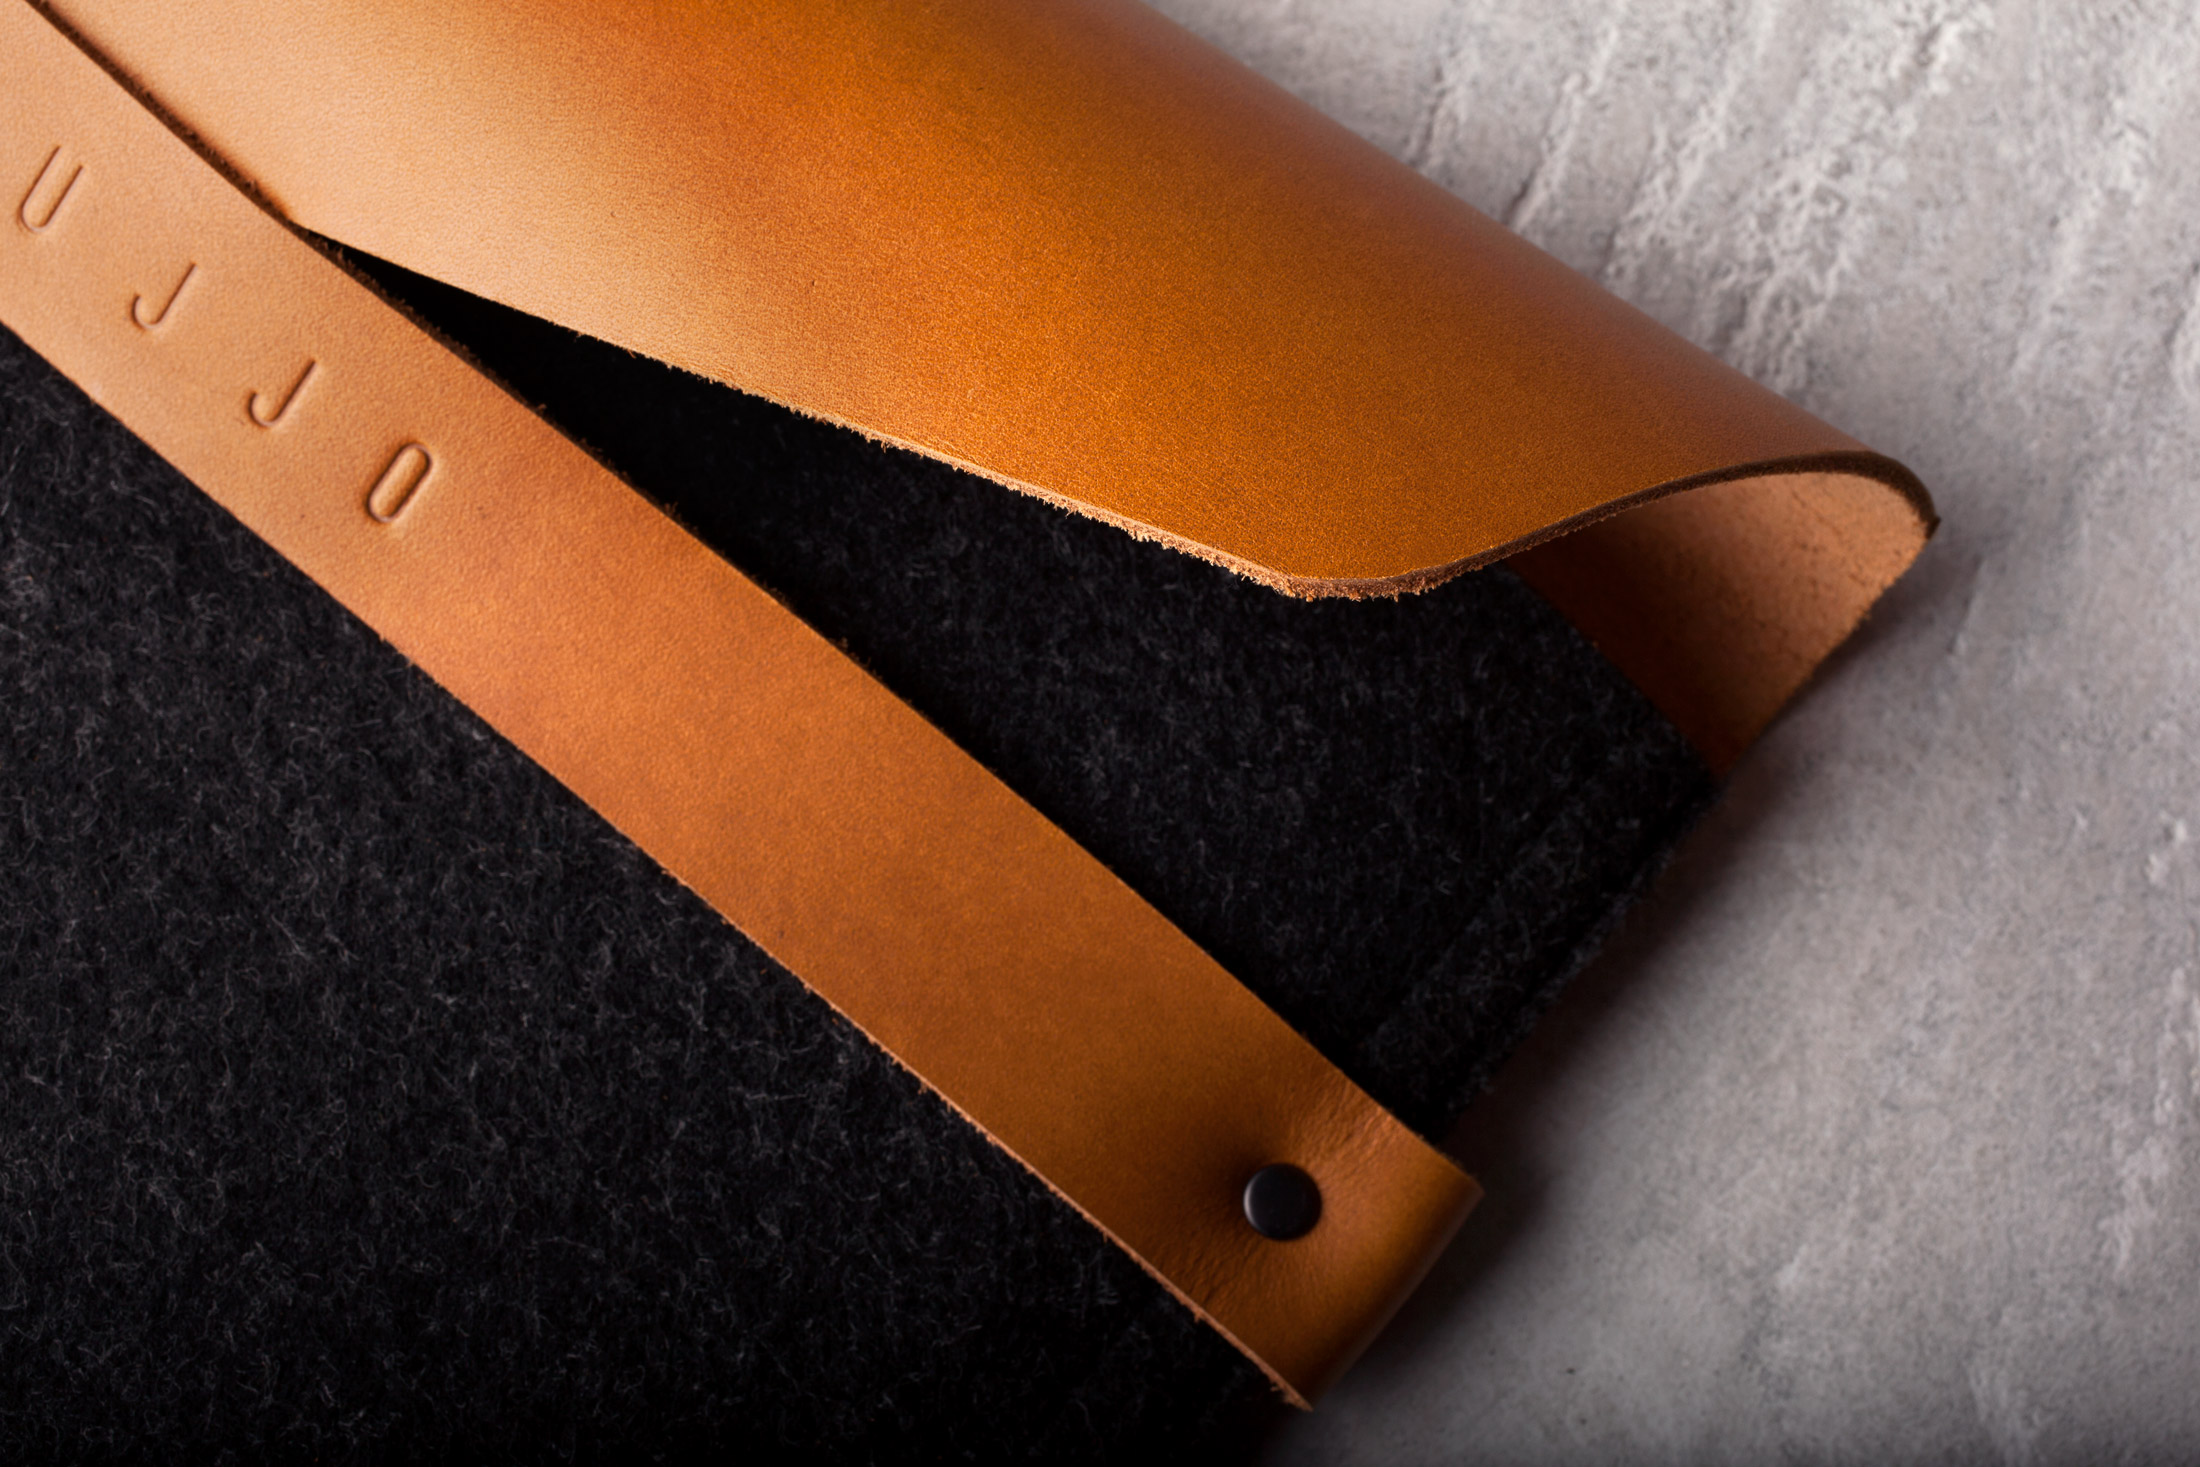 The new Mujjo iPad sleeve and iPhone wallet: Sophisticated gadget cases that can hold their own in any office.